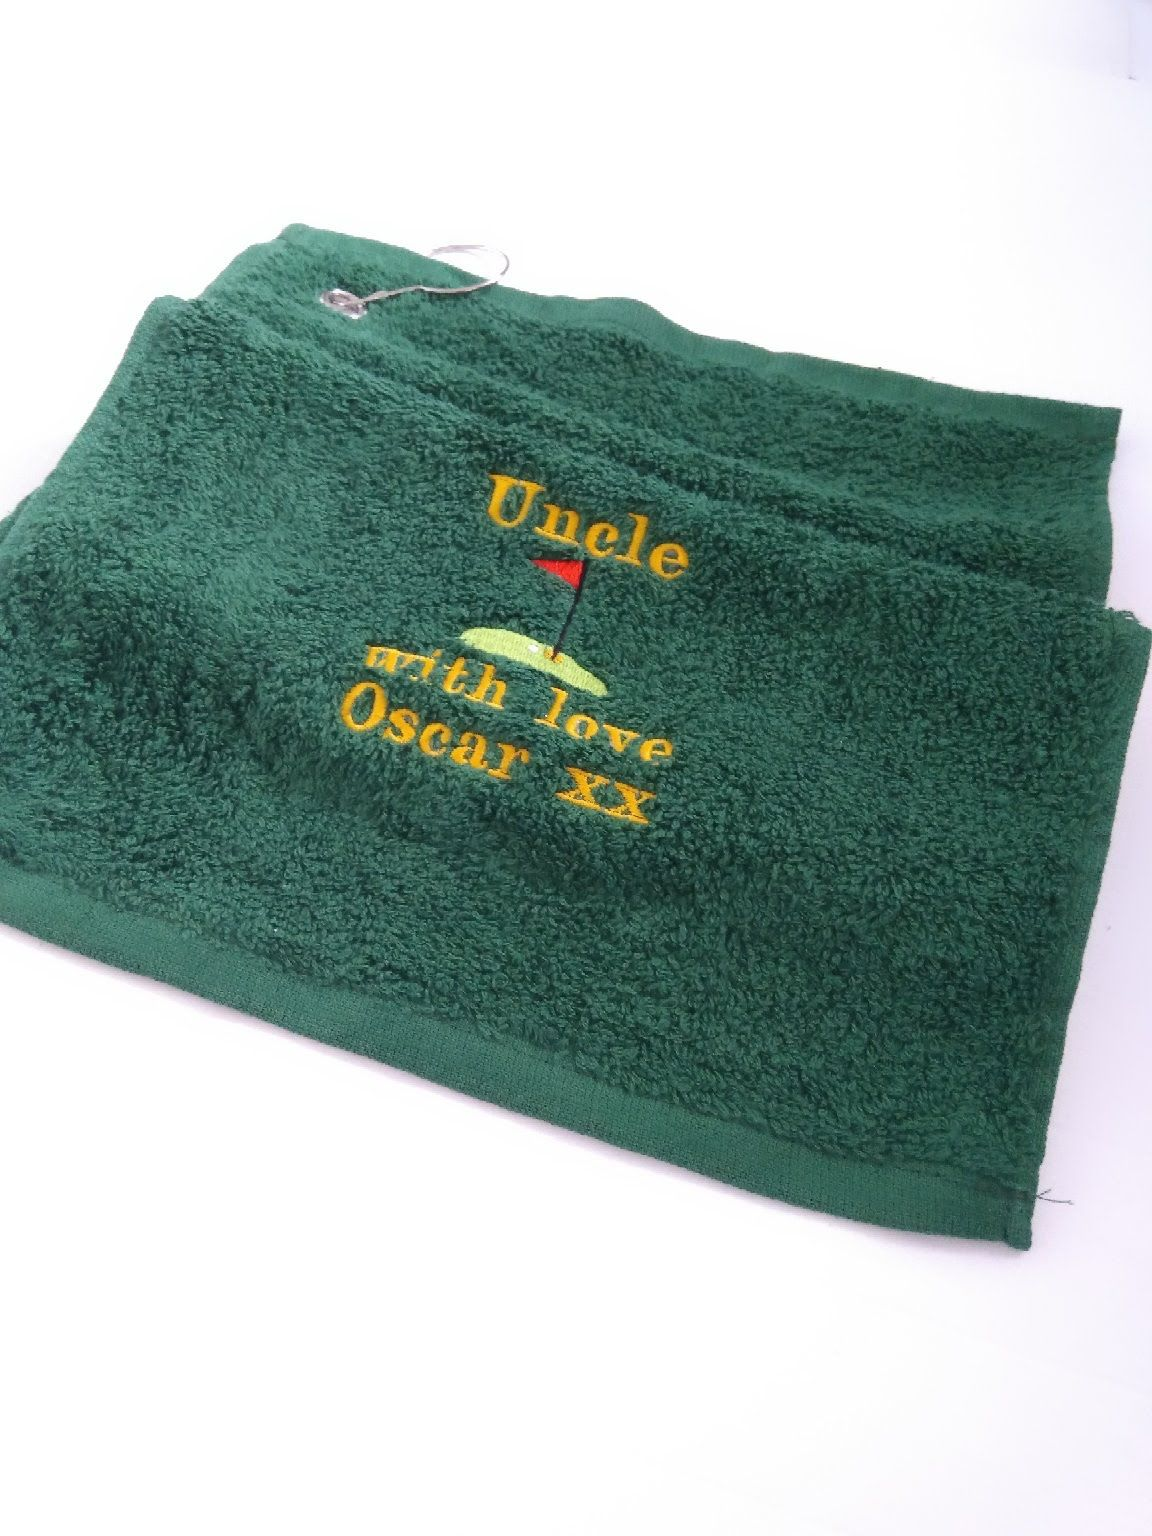 Personalised Golf Towel by Imprint Products